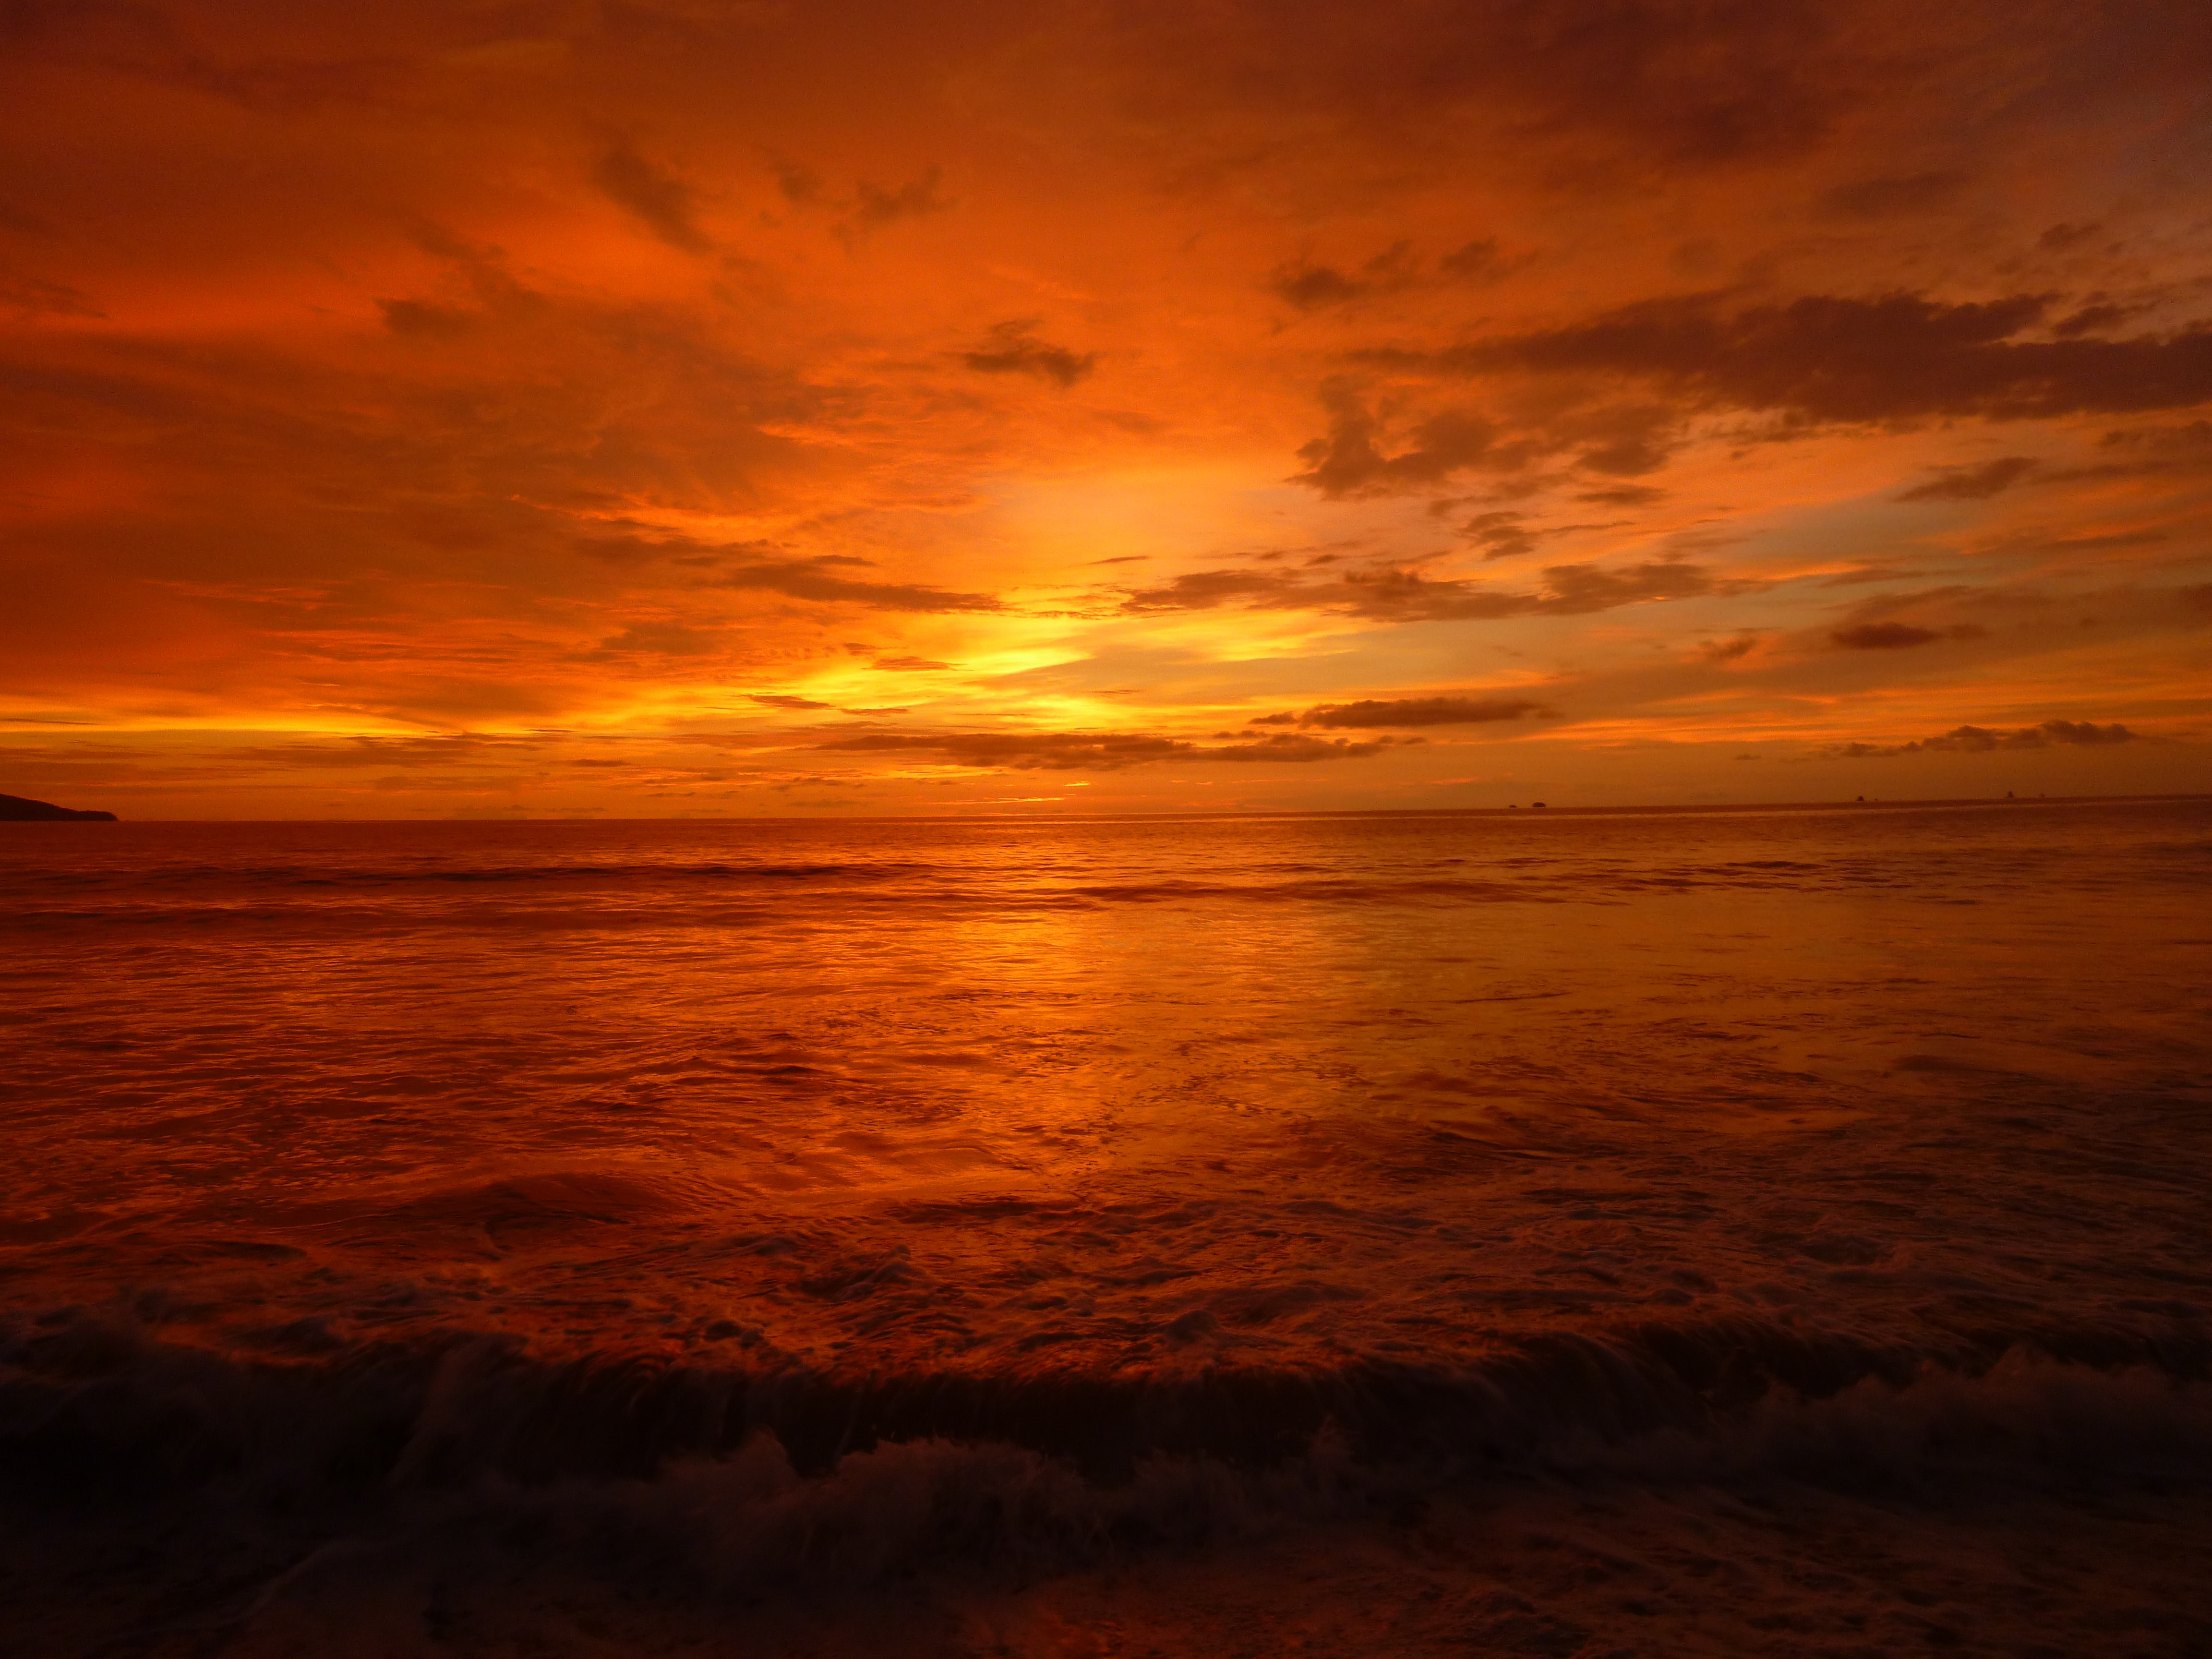 Dramatic deep orange sunset over the ocean with golden and grey wispy clouds in the sky.